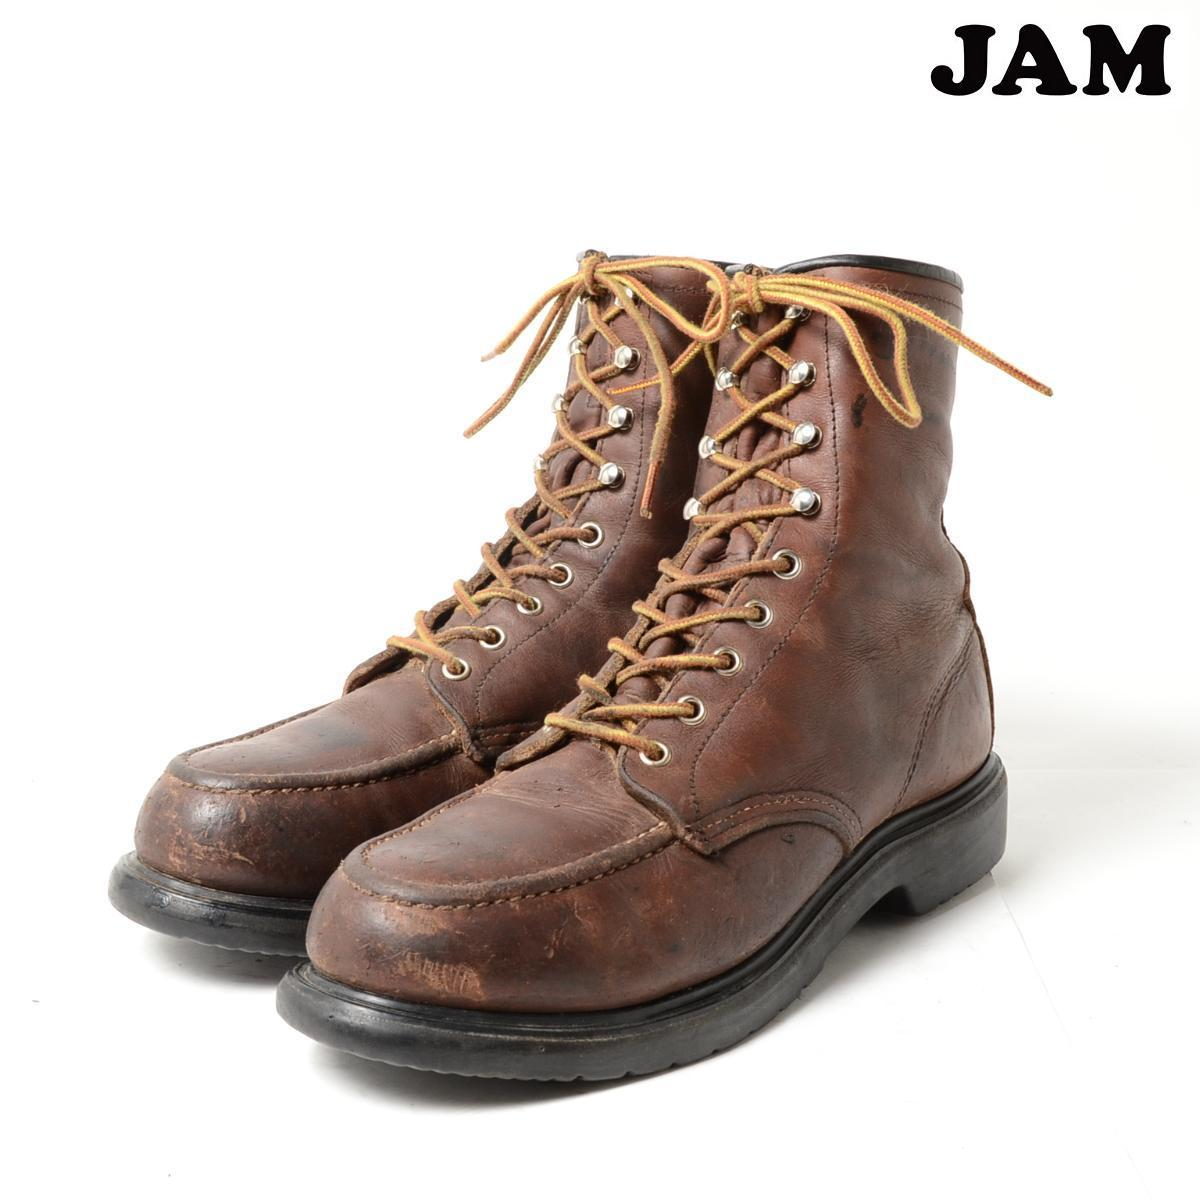 Red Wing Lace Up Boots fFmfKO95